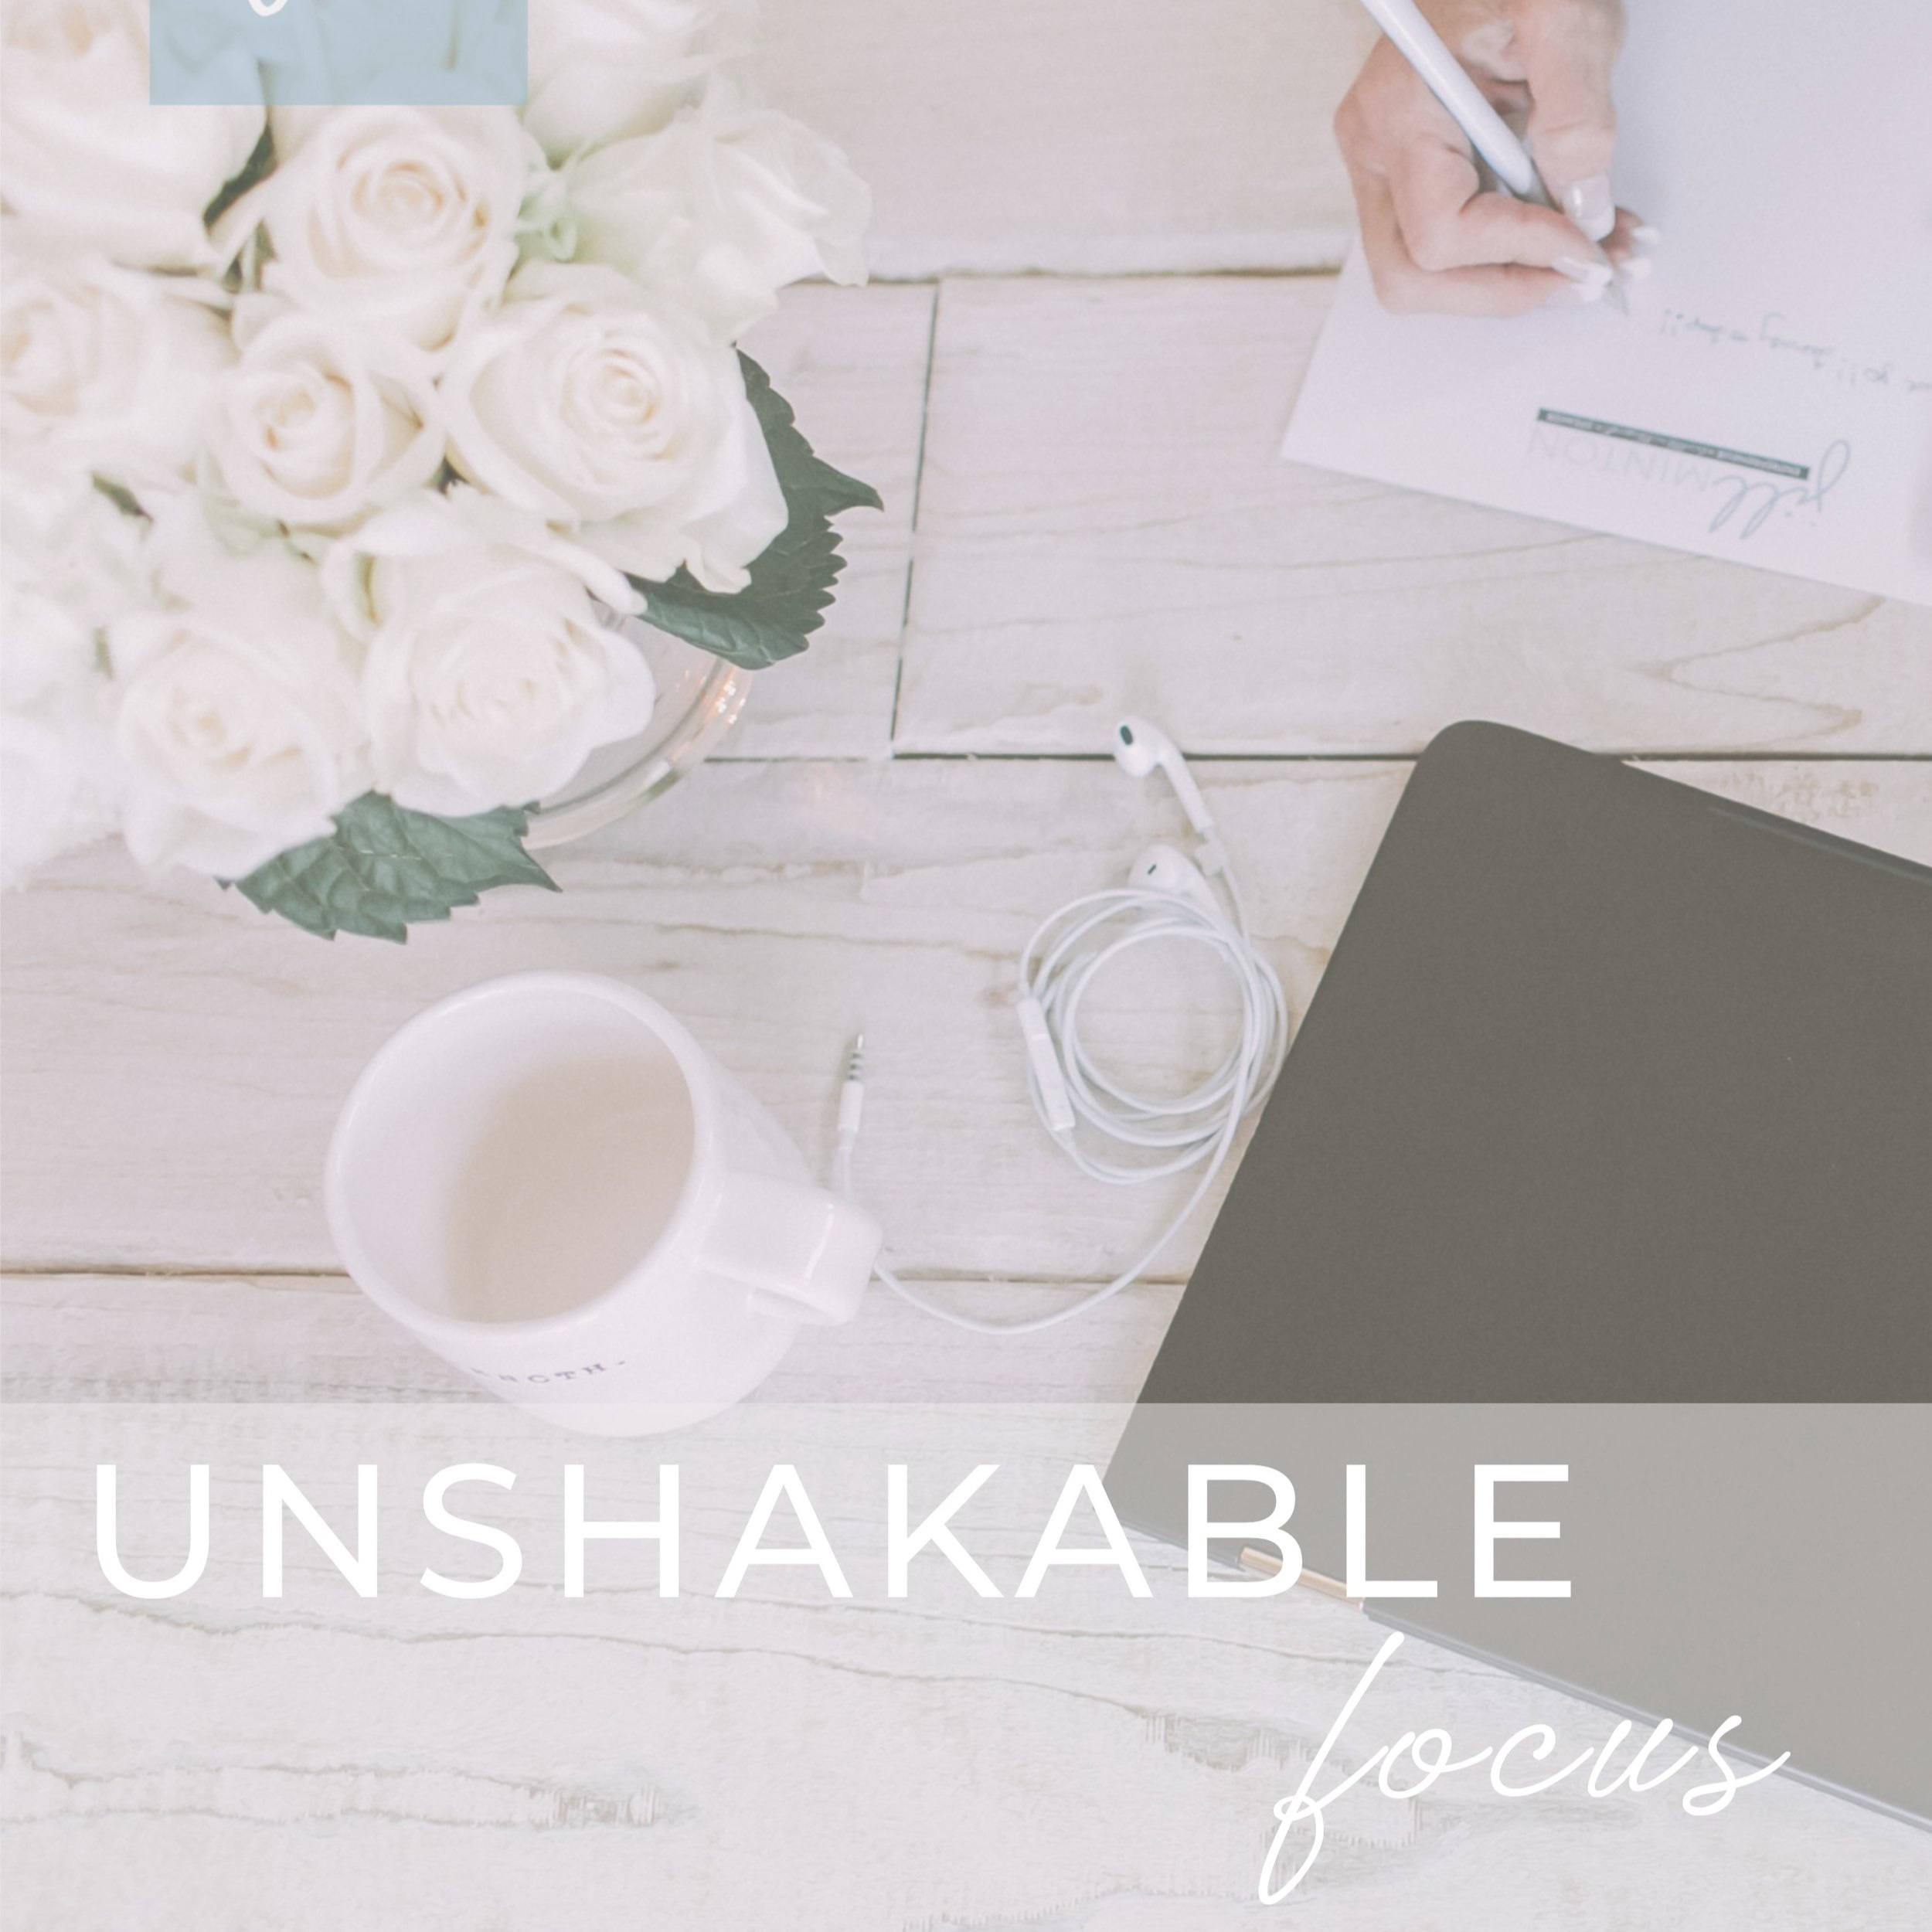 UNSHAKABLE FOCUS eBOOK & PLANNER - Accomplish your goals at record speed with a plan and a method to channel a focus so intense it's unshakable. This package includes an eBook detailing the plan, a video to demonstrate further, and a planner full of tools and templates to plan your days and MAKE THINGS HAPPEN!